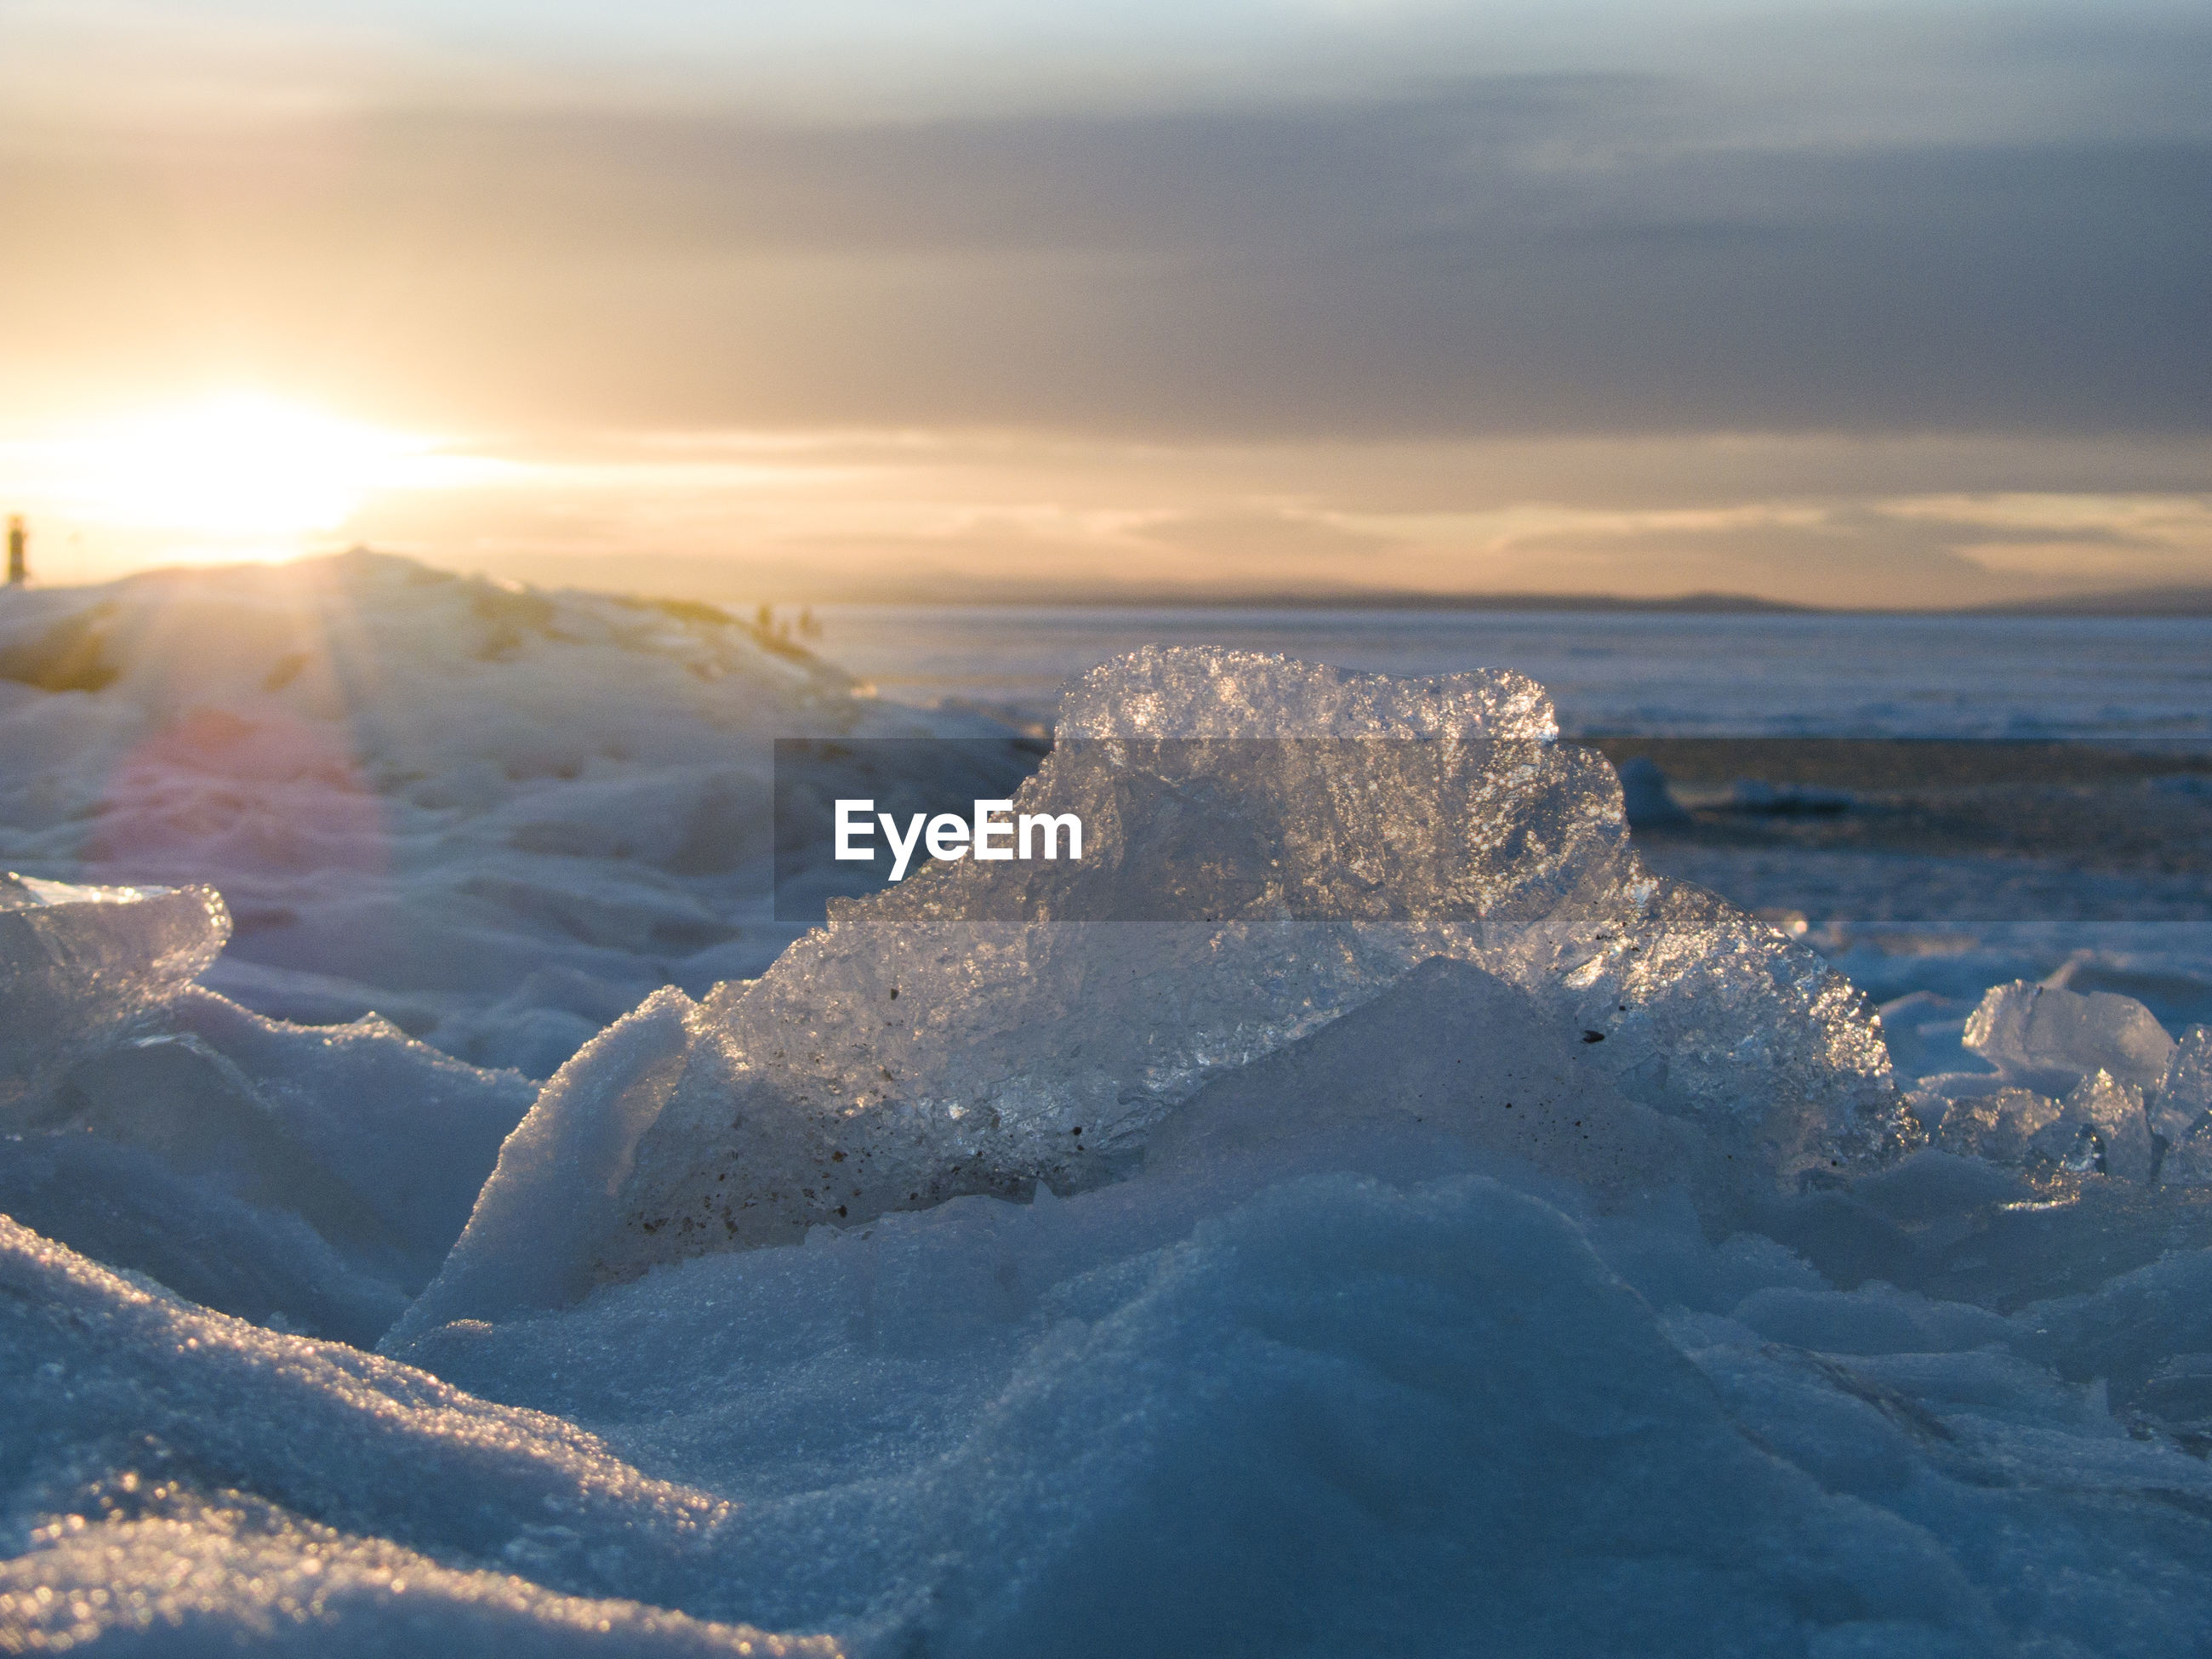 Close-up of ice at frozen lake neusiedl against sky during sunset